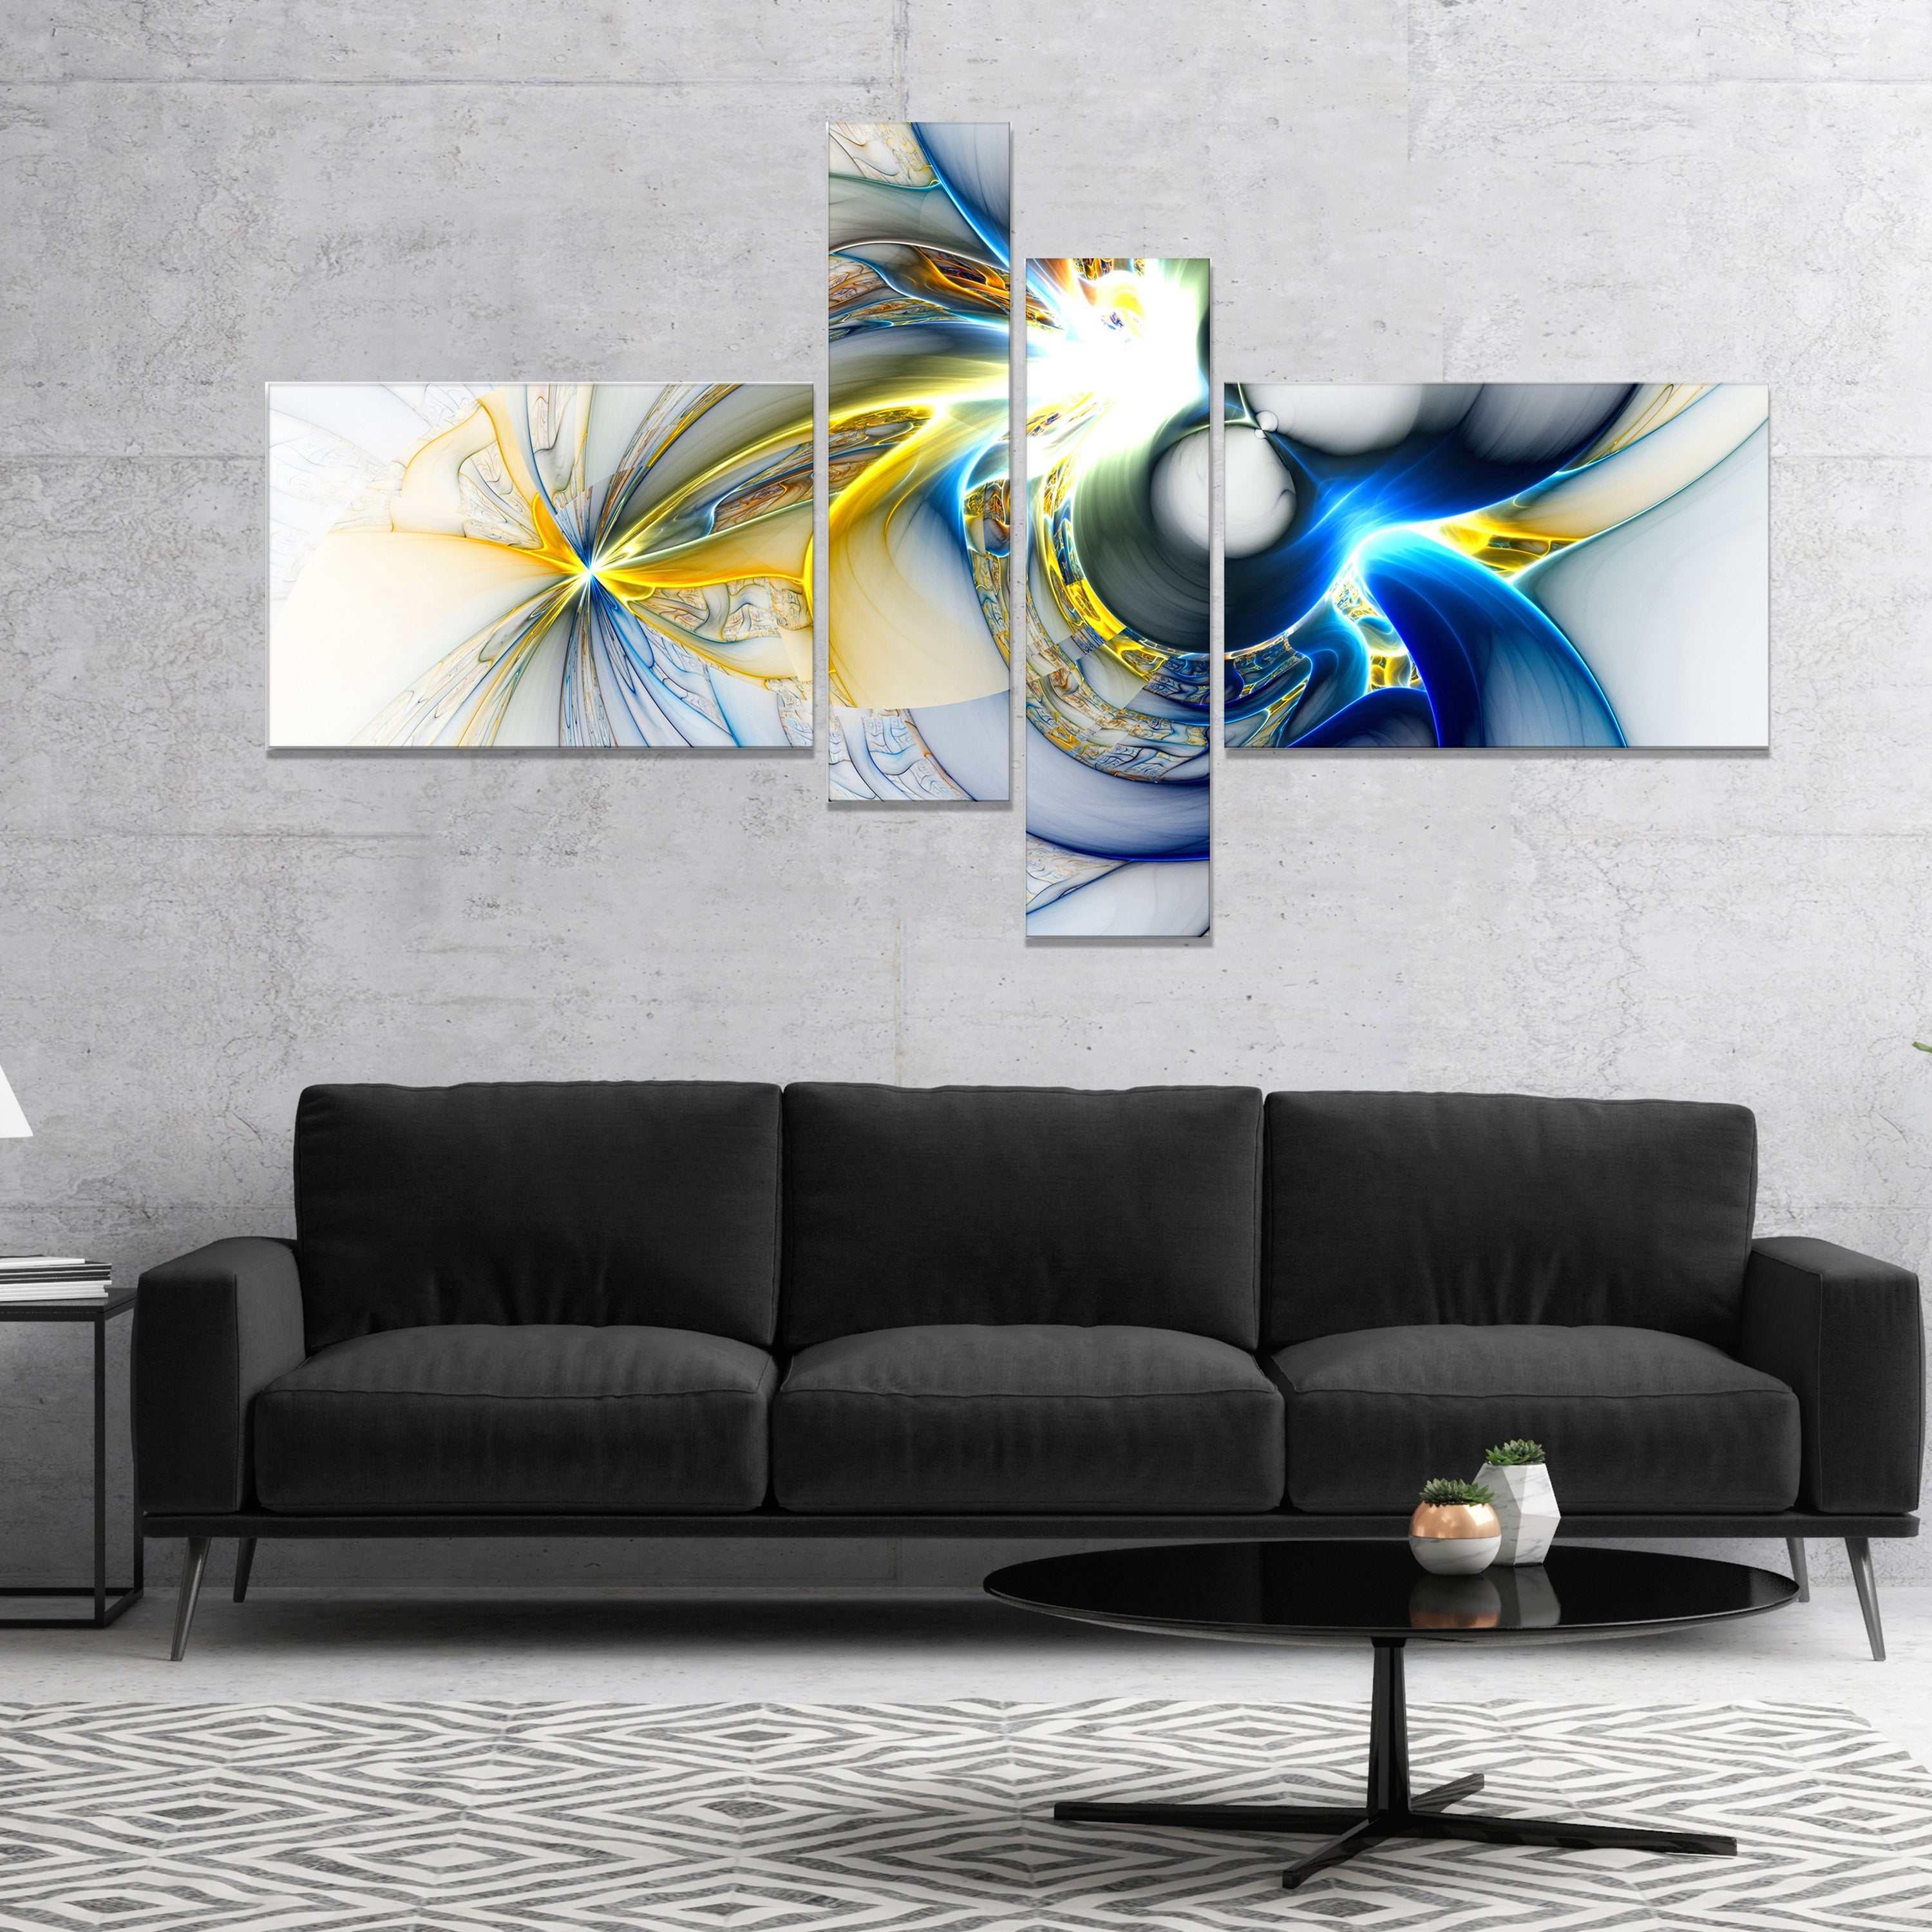 ABSTRACT MULTICOLOUR BLUE PINK CANVAS WALL ART PICTURE 18 X 32 INCHES FRAMED